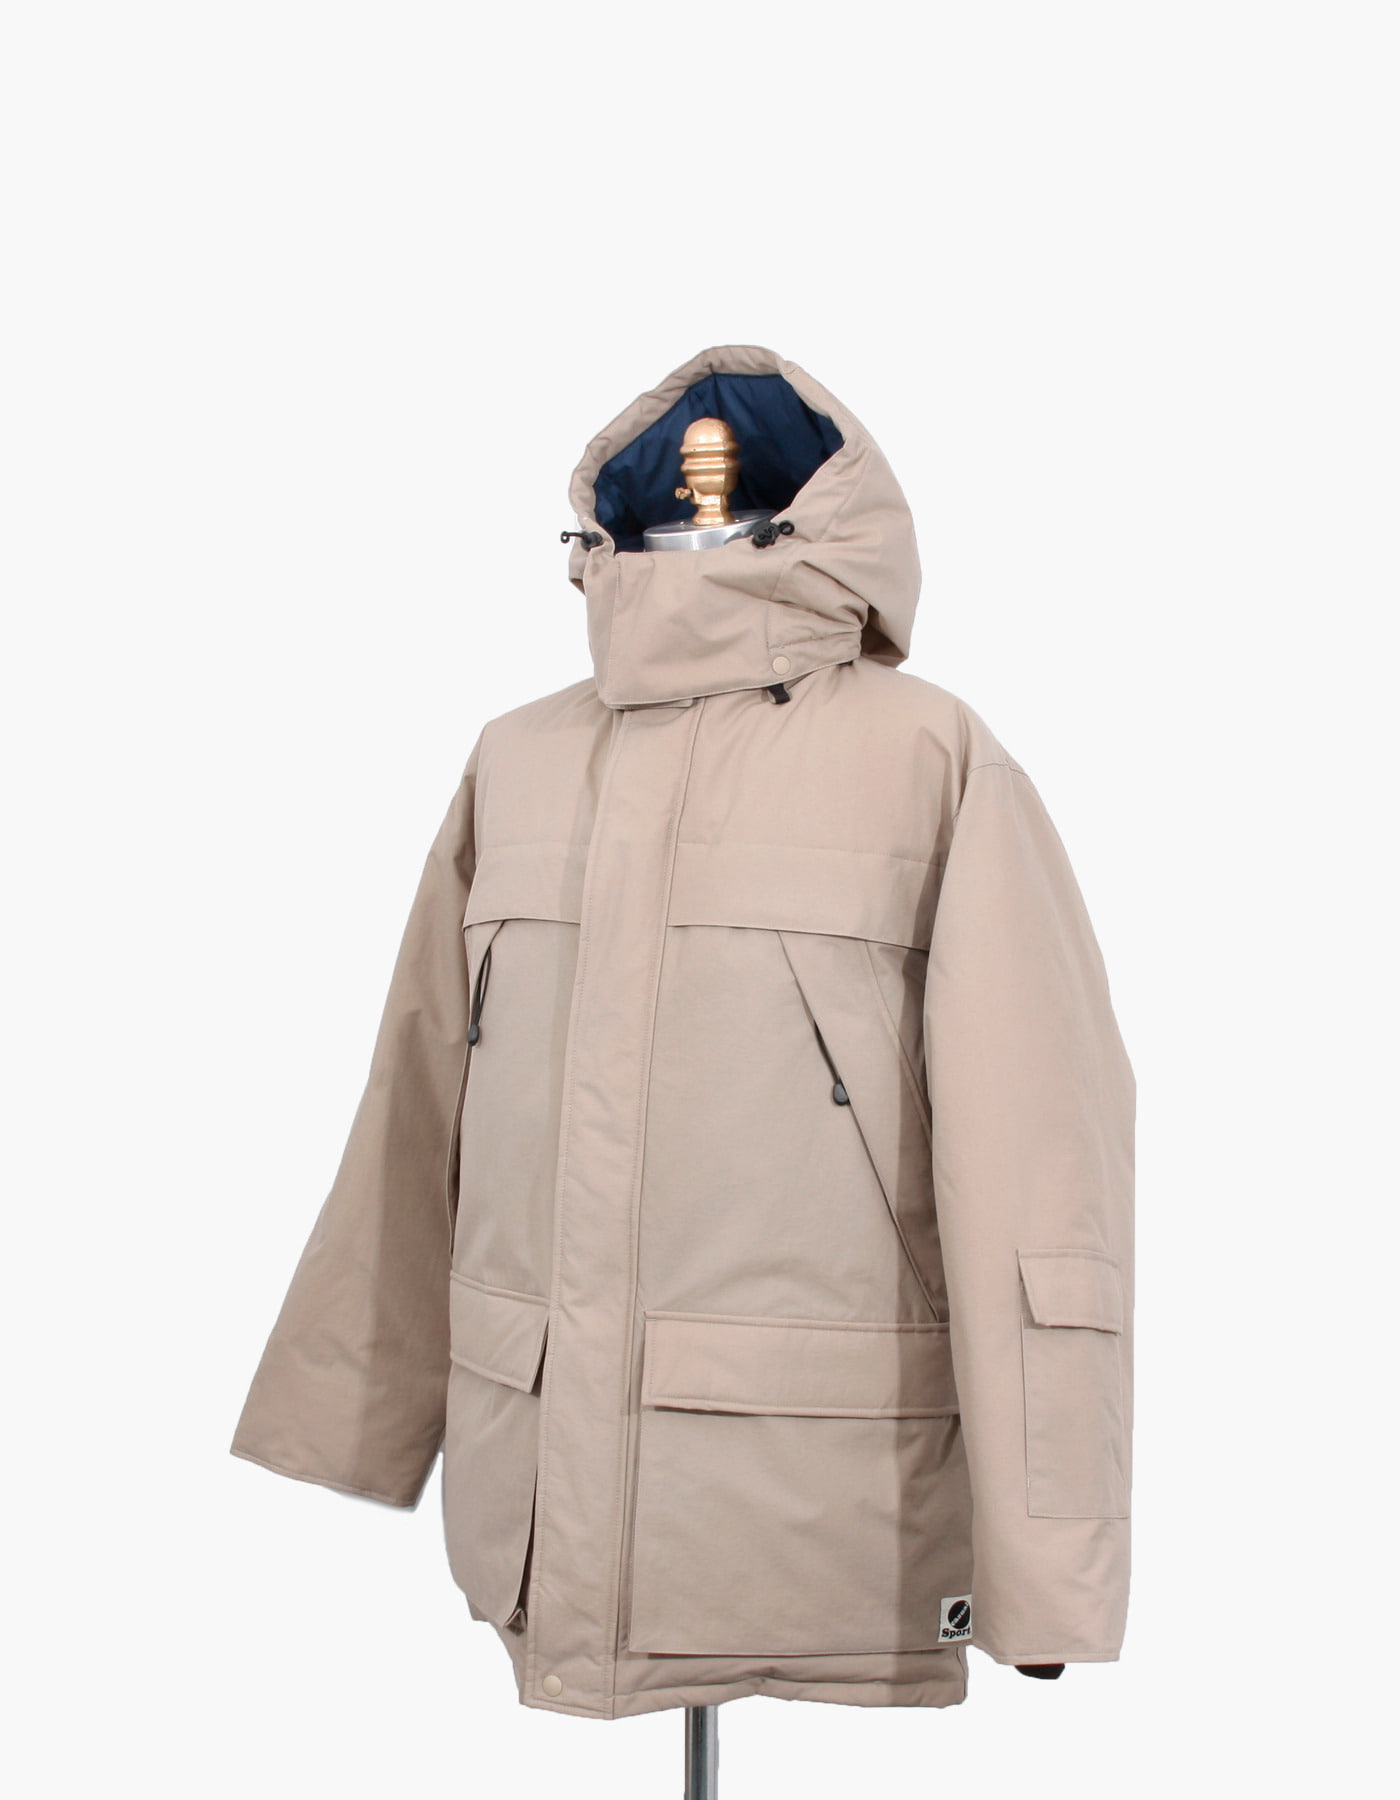 MOUNTAIN GOOSE DOWN PARKA / BEIGE